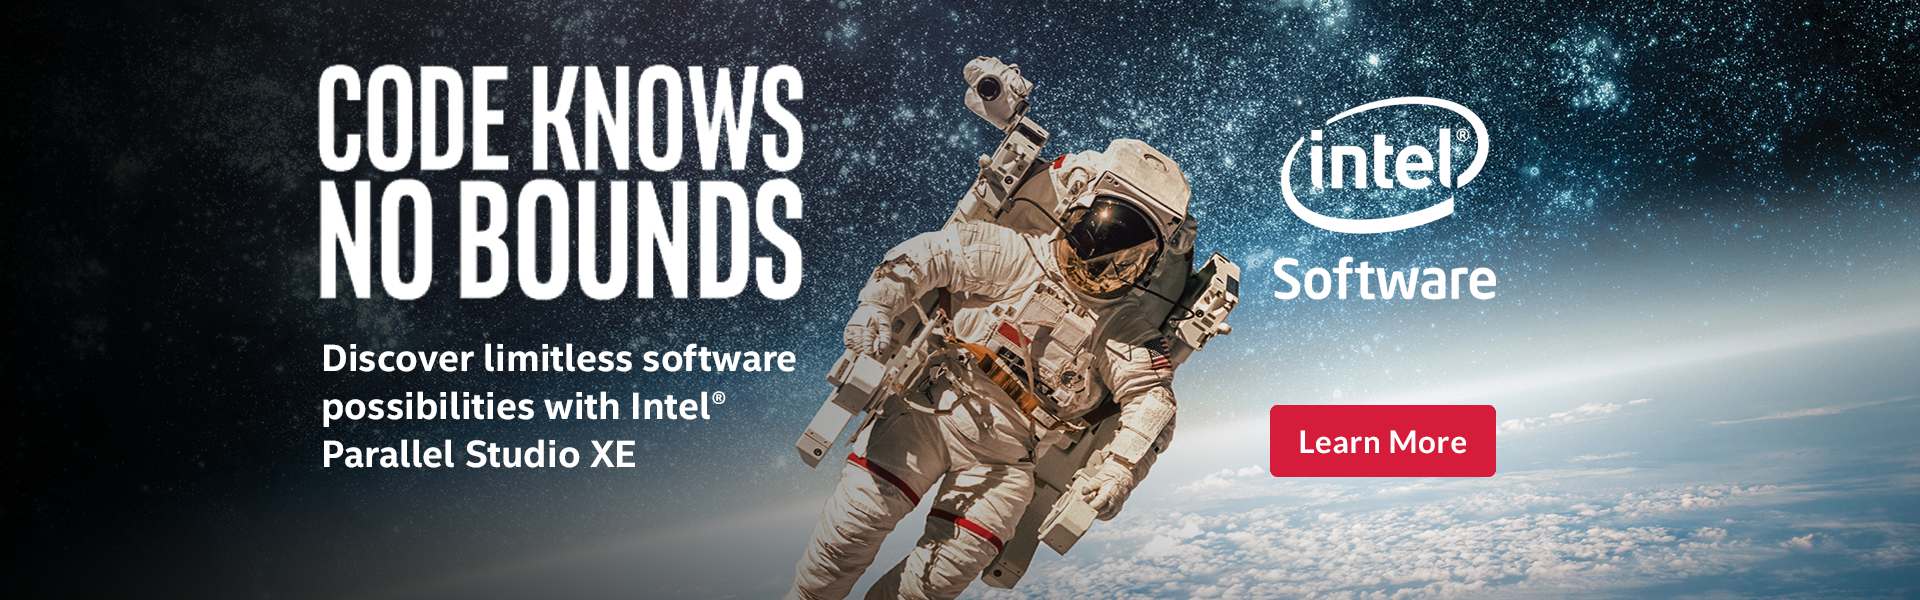 Discover limitless software possibilities with Intel Parallel Studios XE.